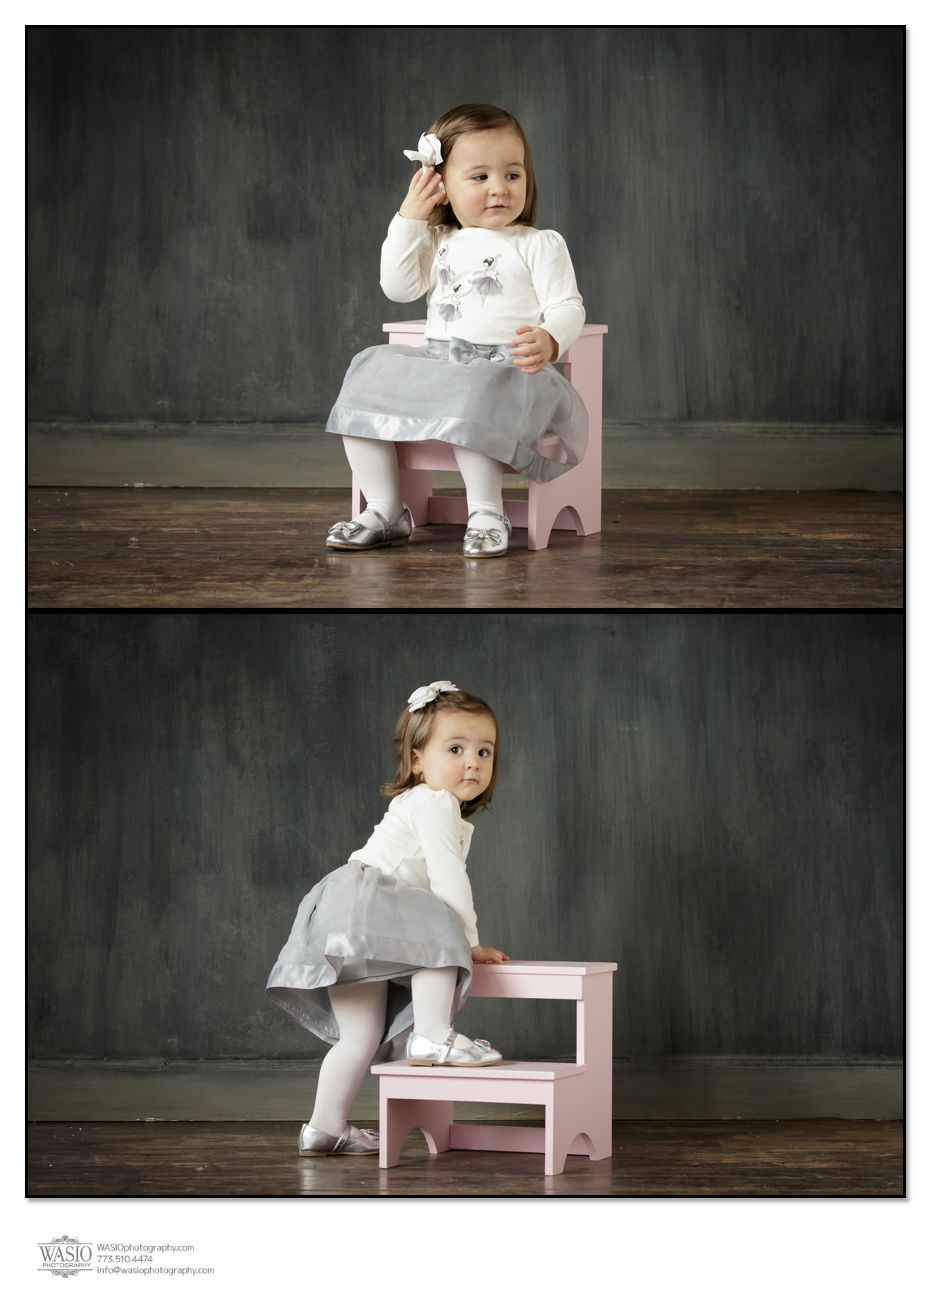 The-Cutest-18-Month-Session-silver-girl-pretty-outfit-hair-bow-kids-photos-ideas-47 The Cutest 18 Month Session - Siena